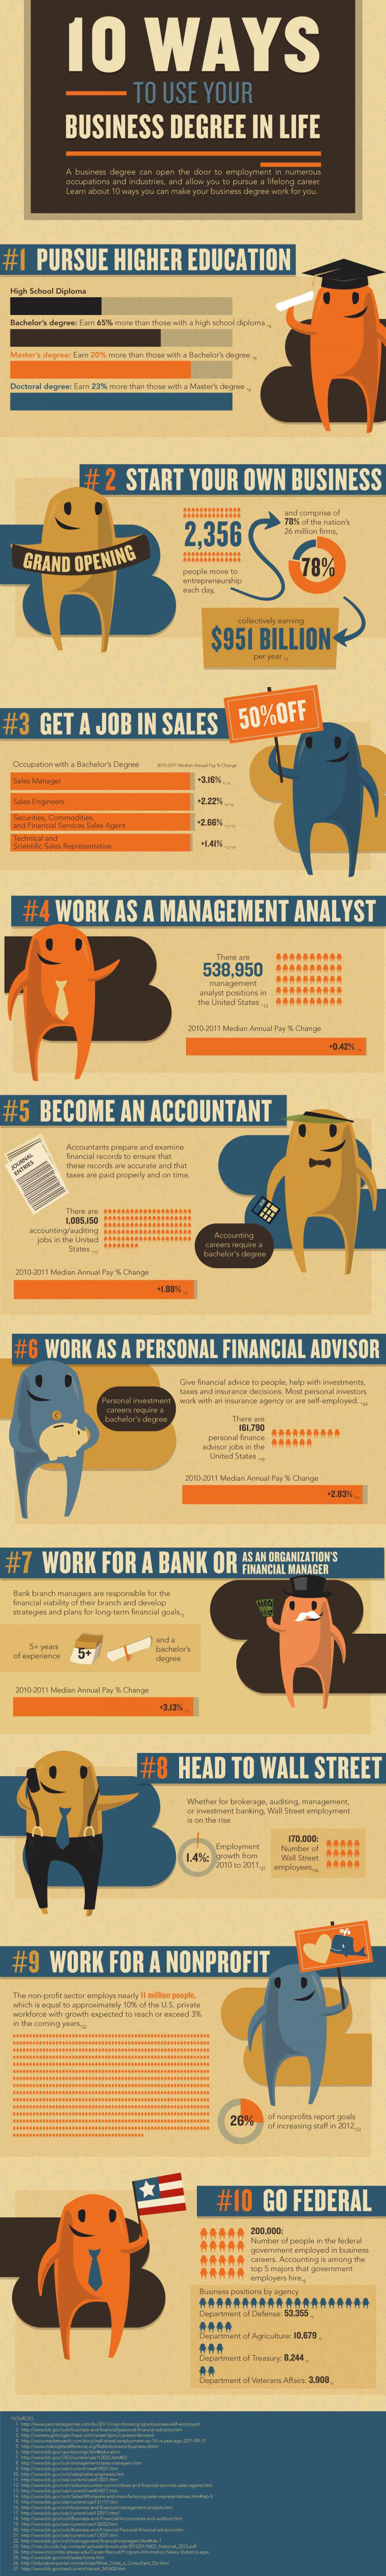 10 Ways to Use Your Business Degree in Life Infographic